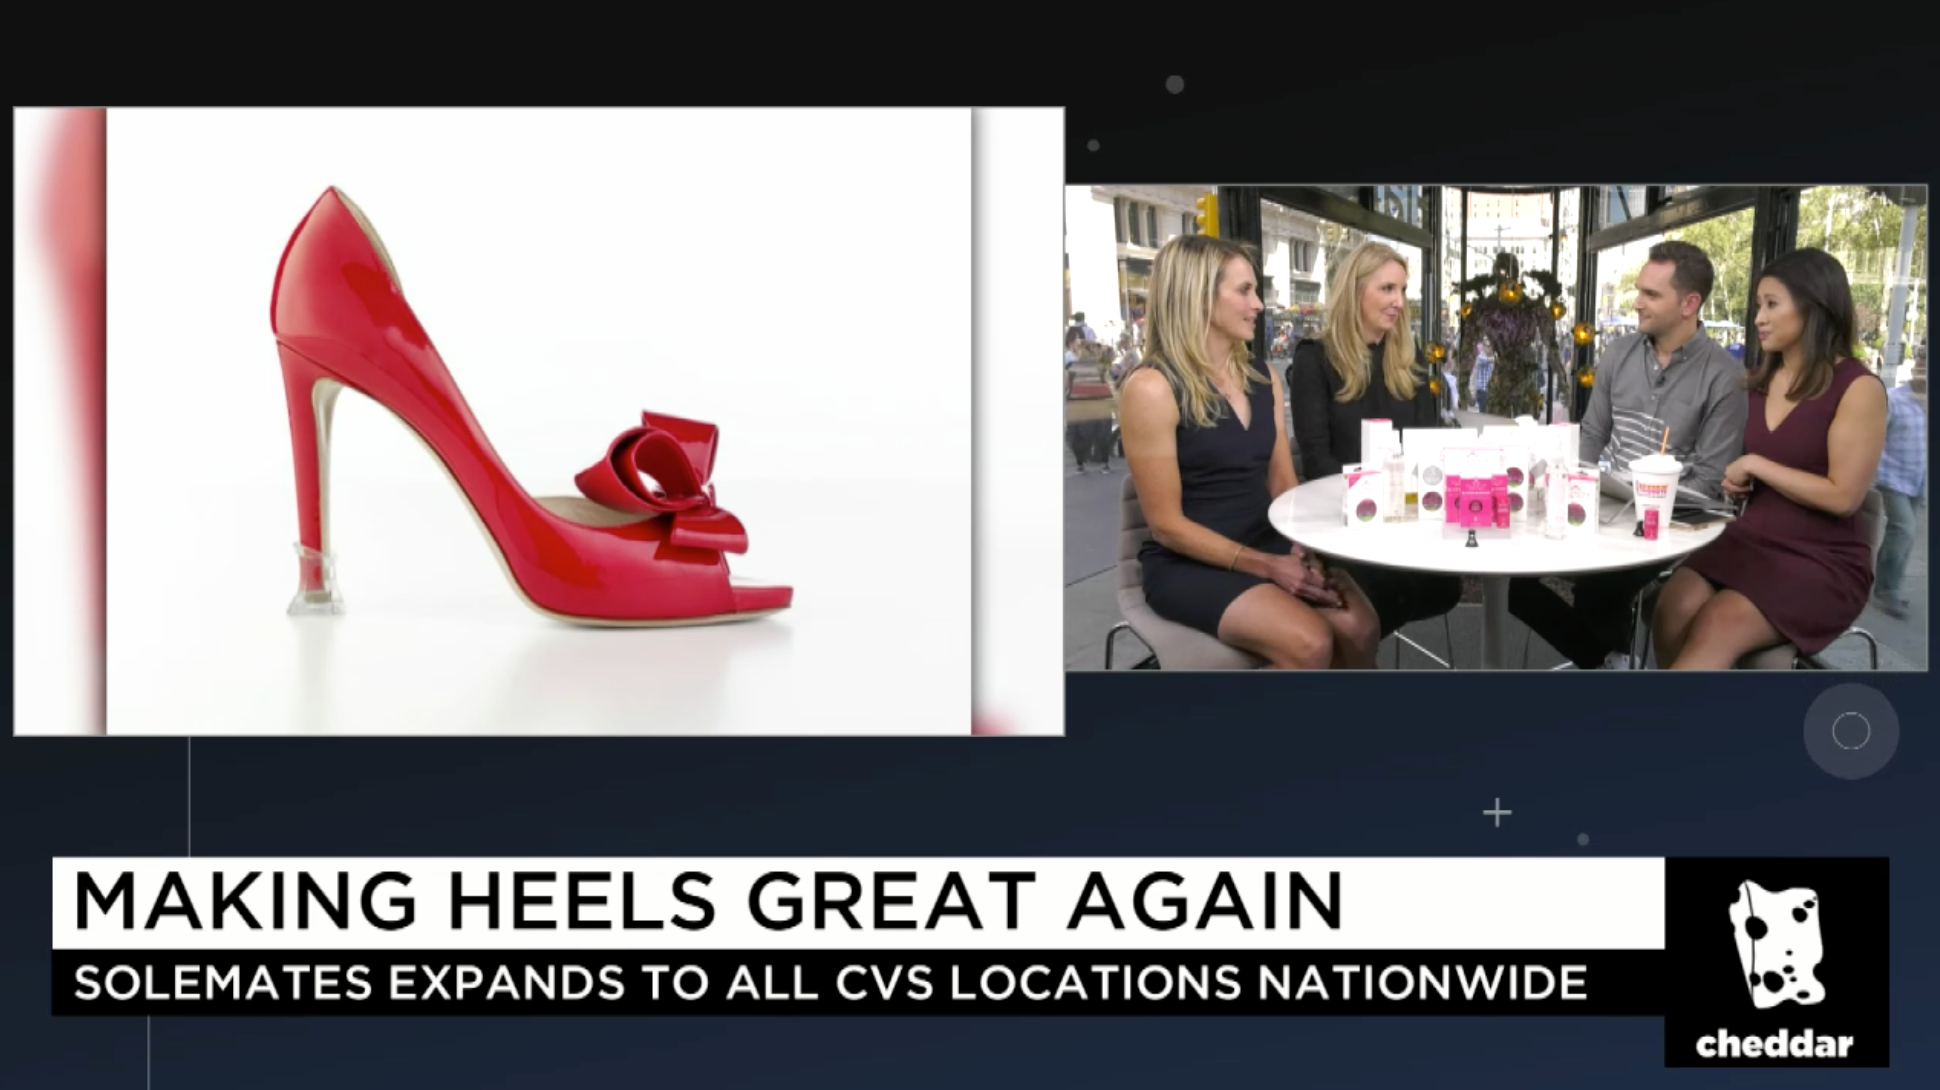 Life after Shark Tank: Cheddar Interviews Solemates on the Success of Their Brand After The Show